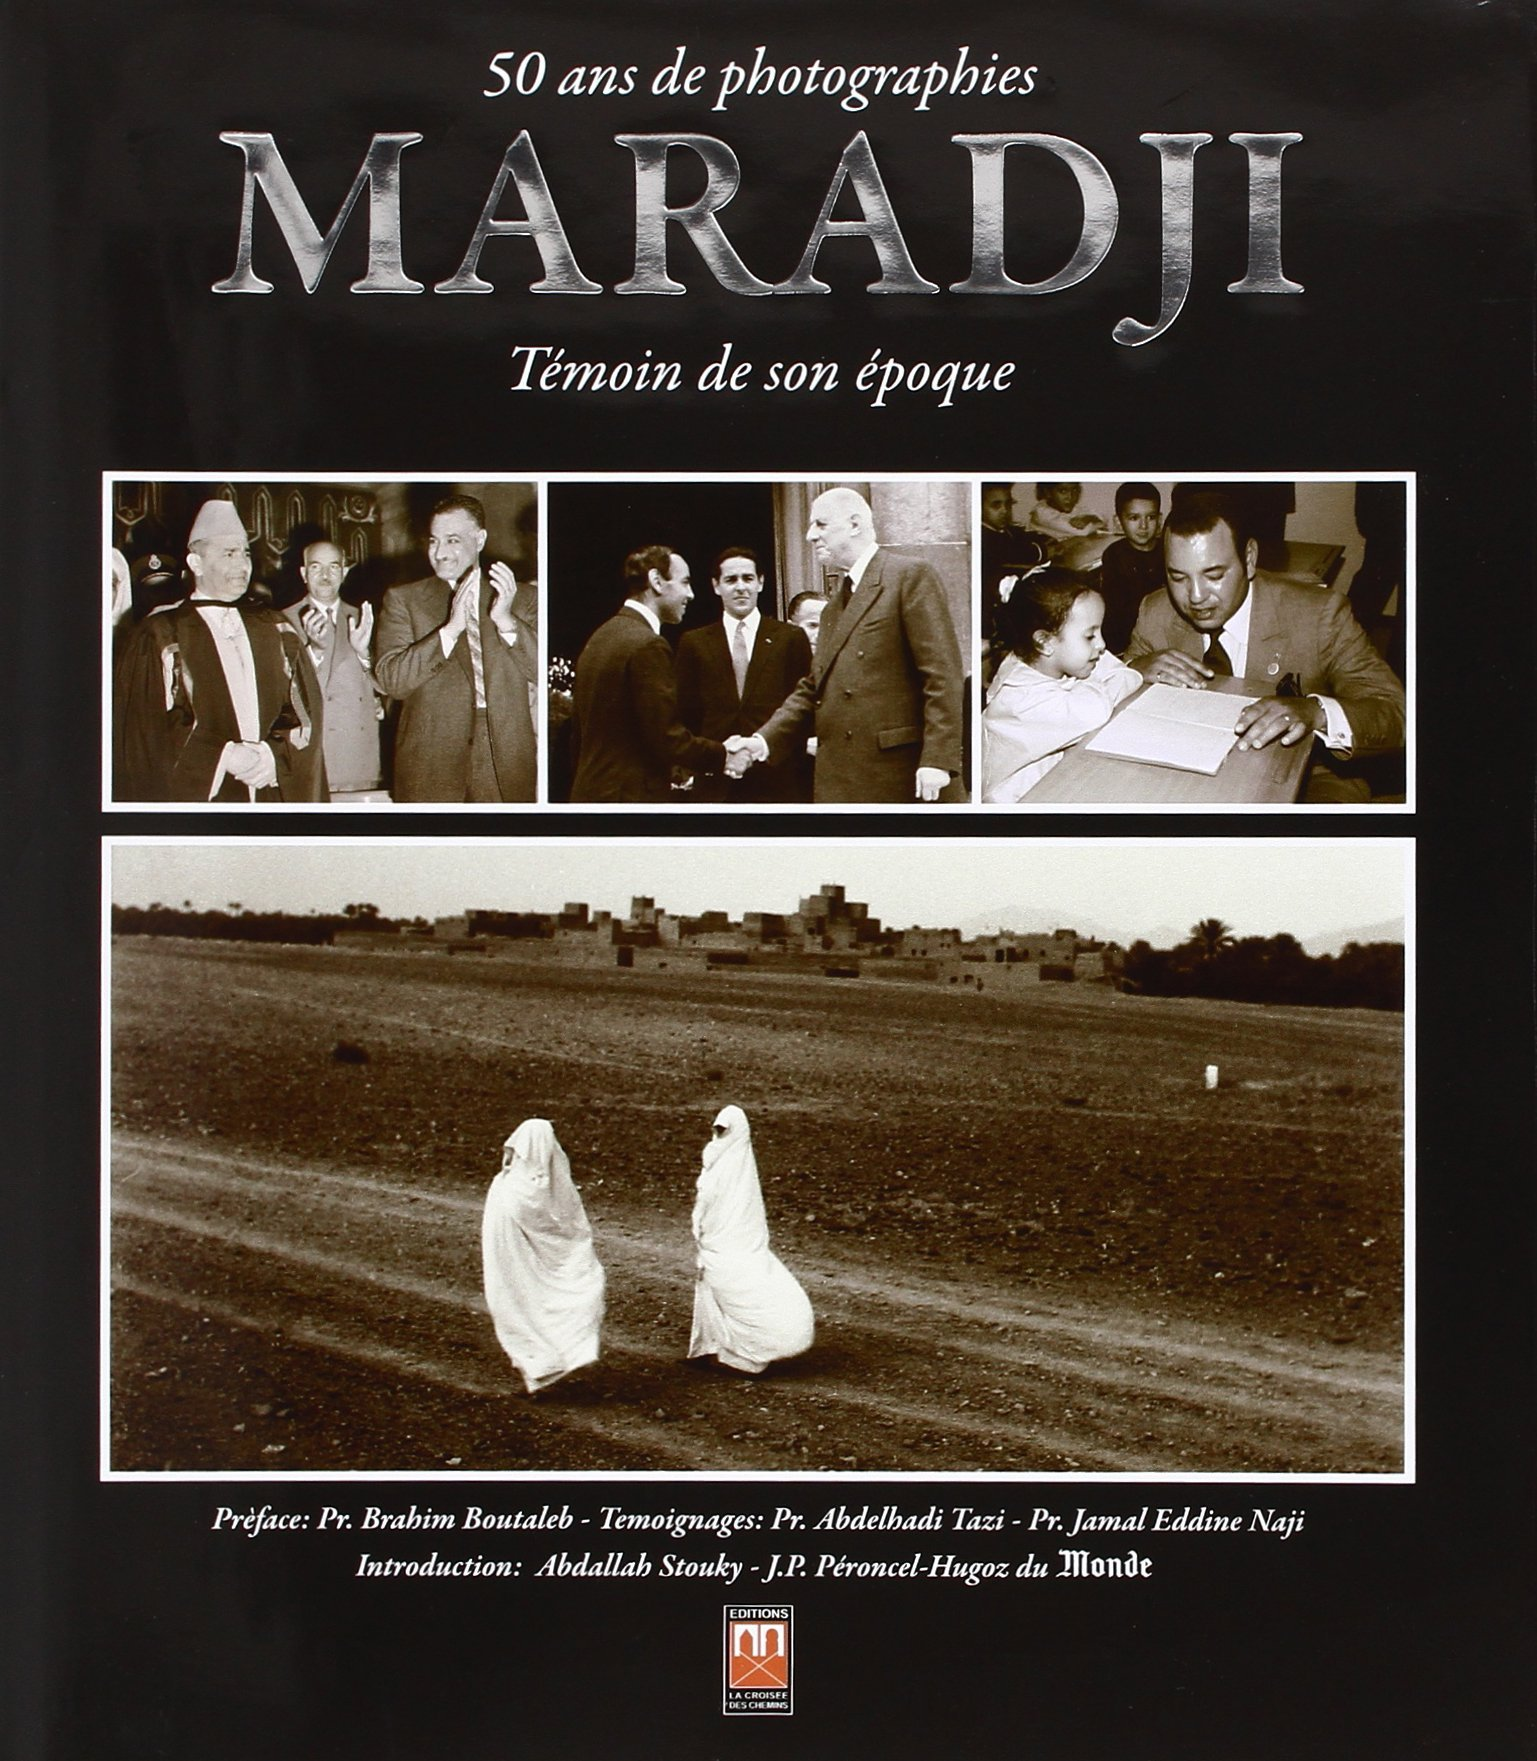 MARADJI : 50 ANS DE PHOTOGRAHIES : TEMOIN DE SON EPOQUE (VERSION ARABE)